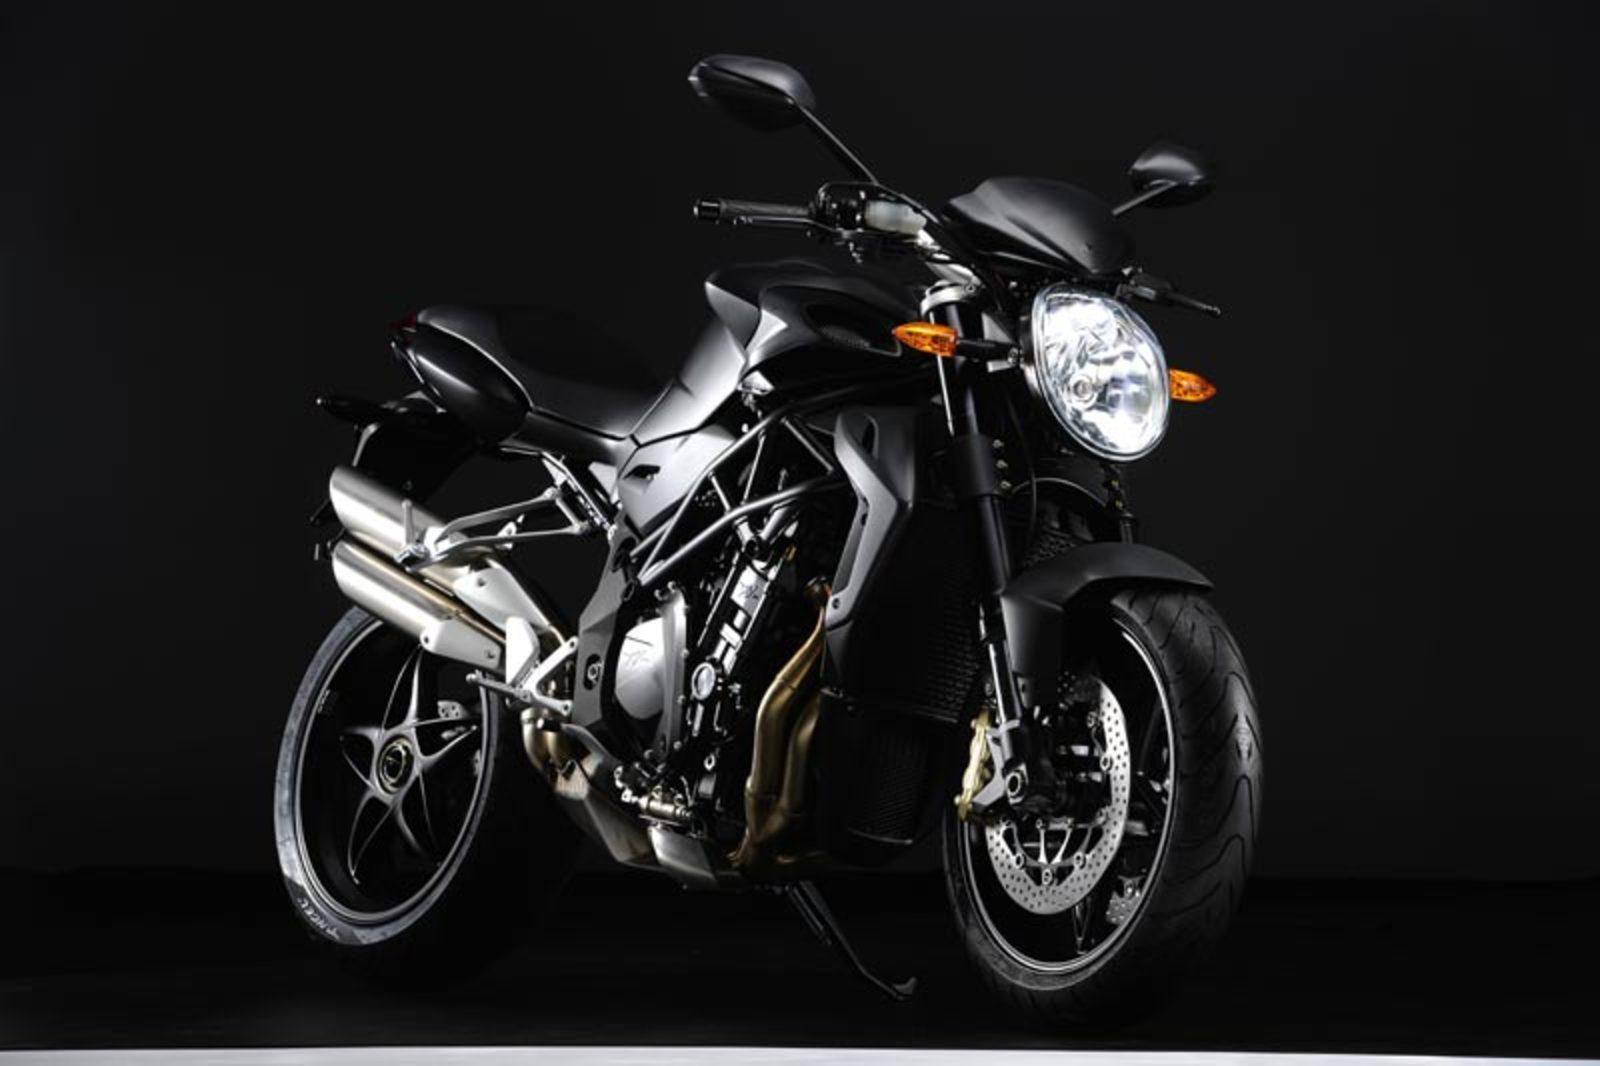 2011 mv agusta brutale 920 review top speed. Black Bedroom Furniture Sets. Home Design Ideas